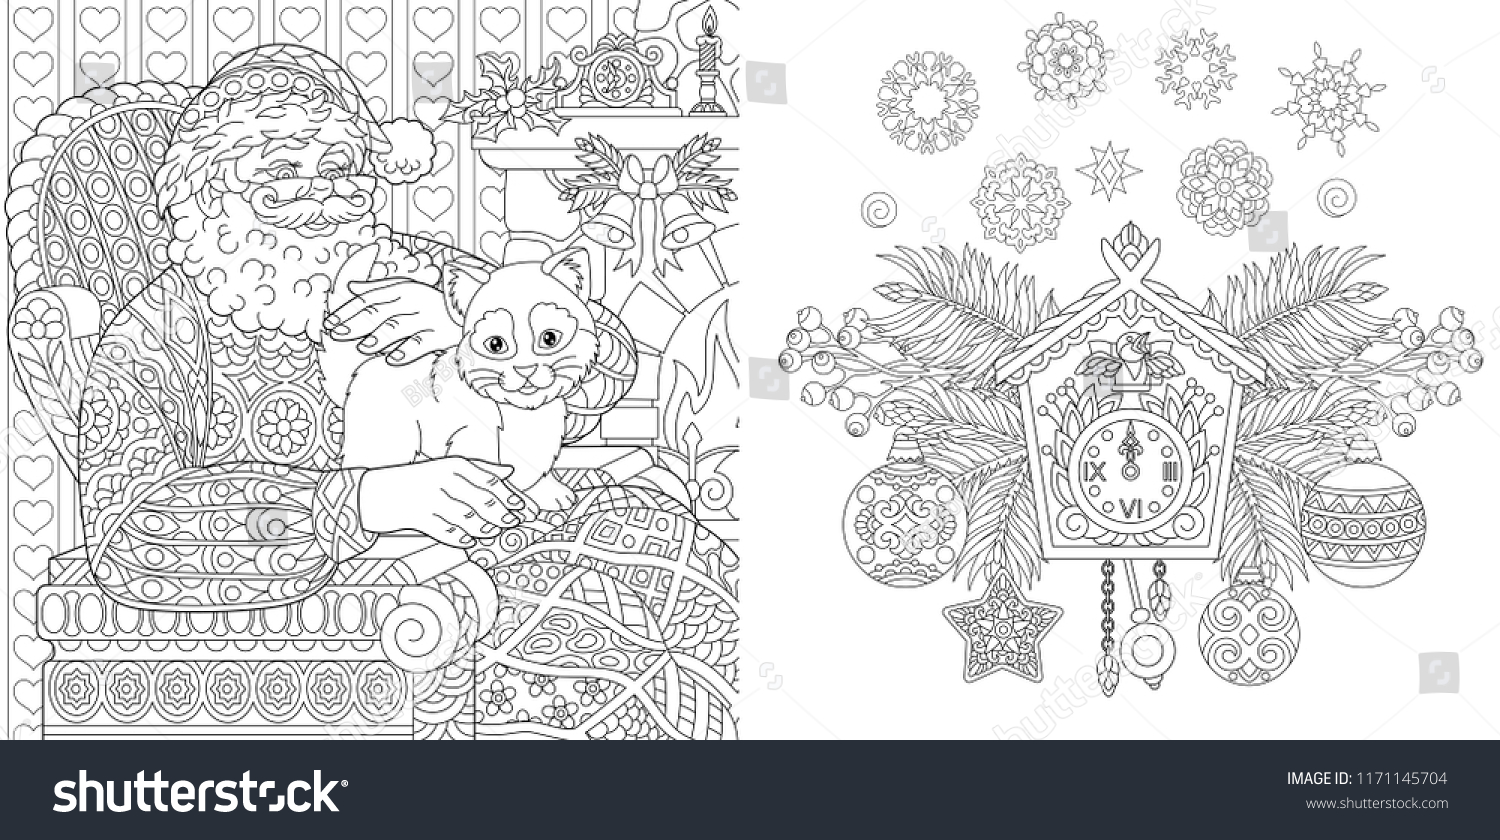 christmas coloring book christmas colouring pages santa claus with a cat in vintage style